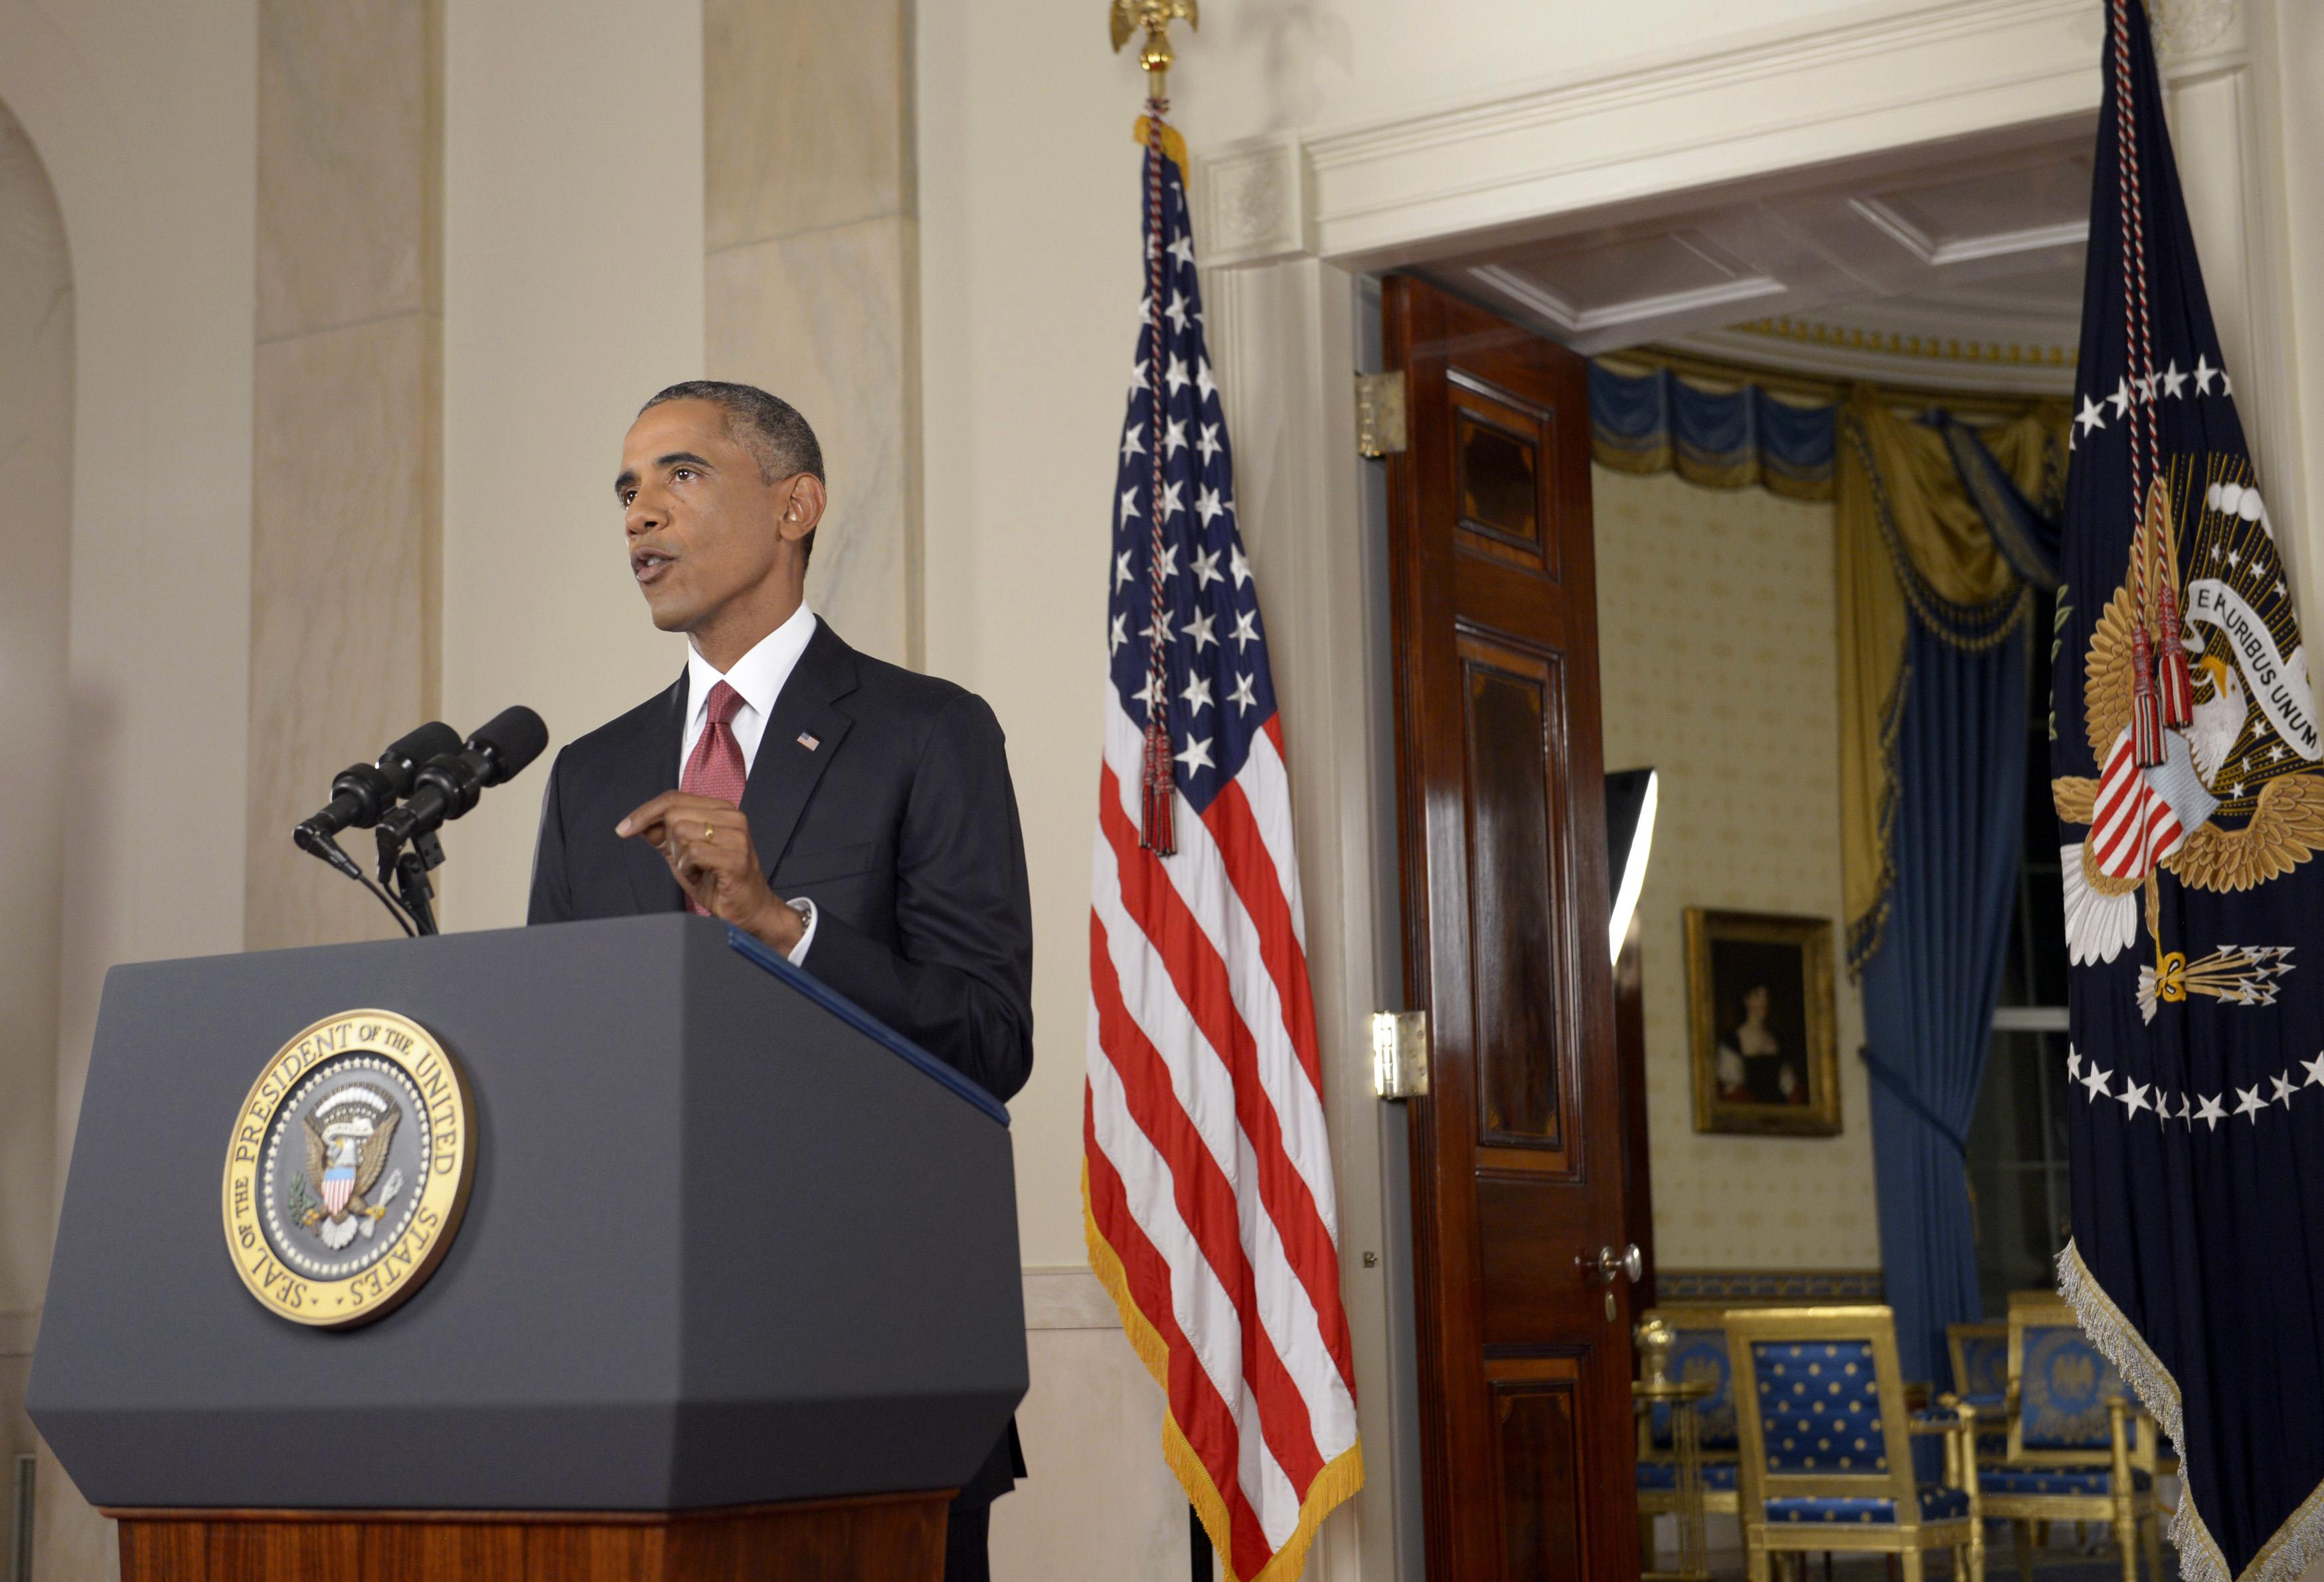 U.S. lawmakers embrace fight against Islamic State, some question Obama plan